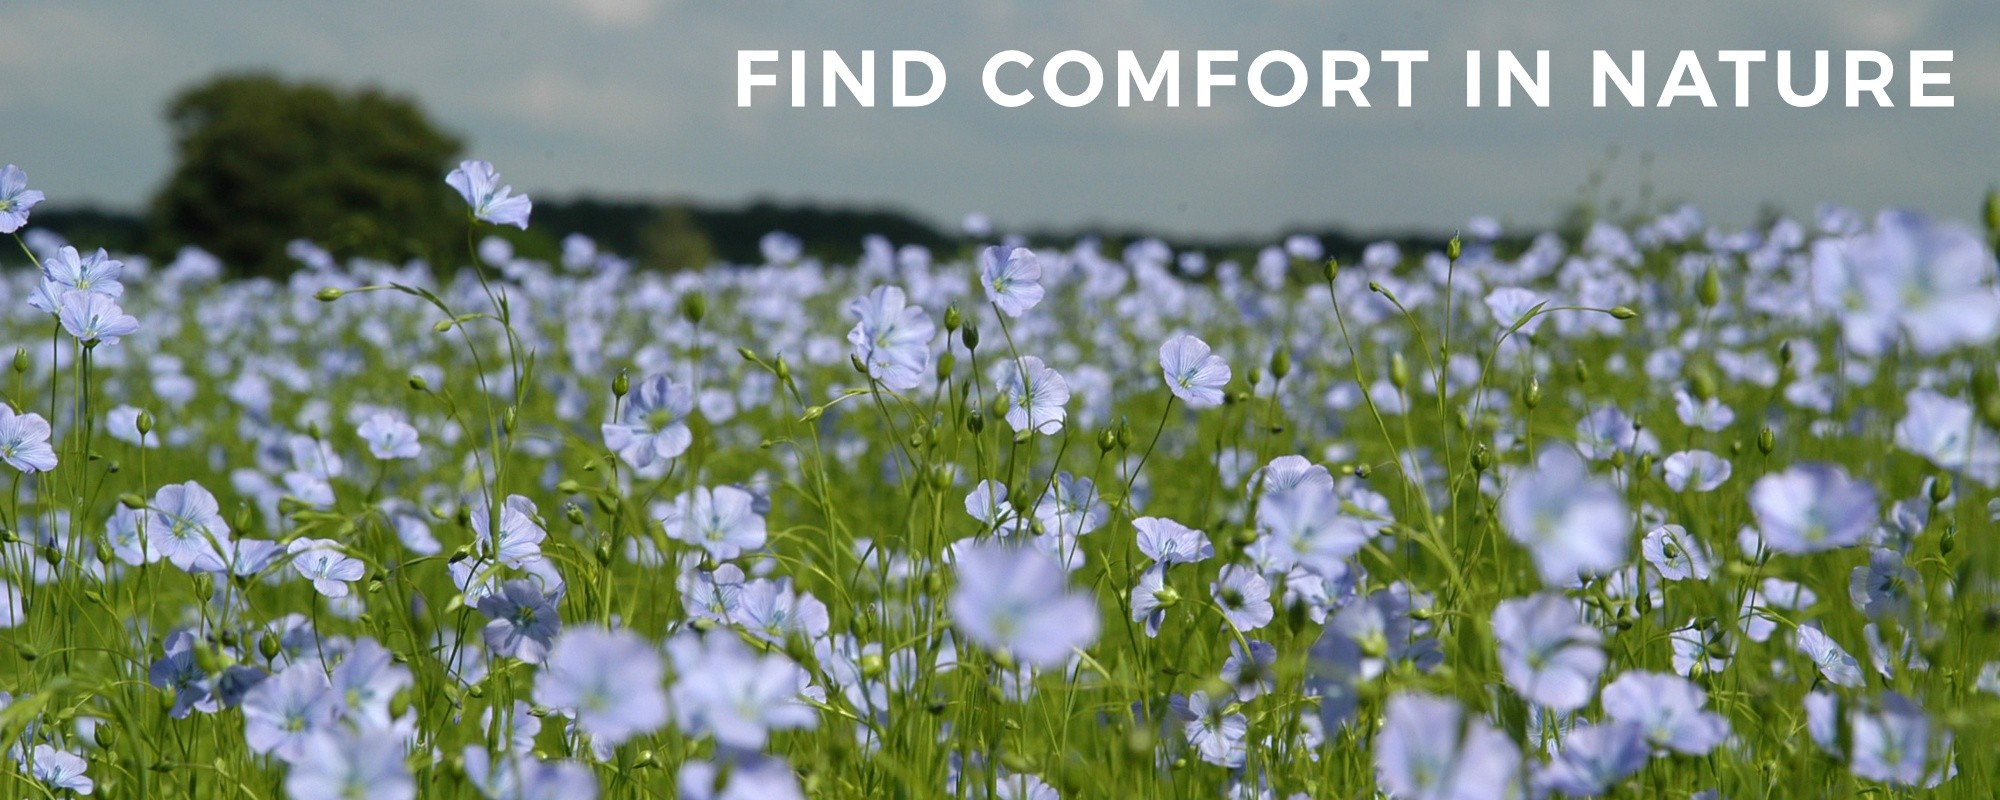 FIND COMFORT IN NATURE